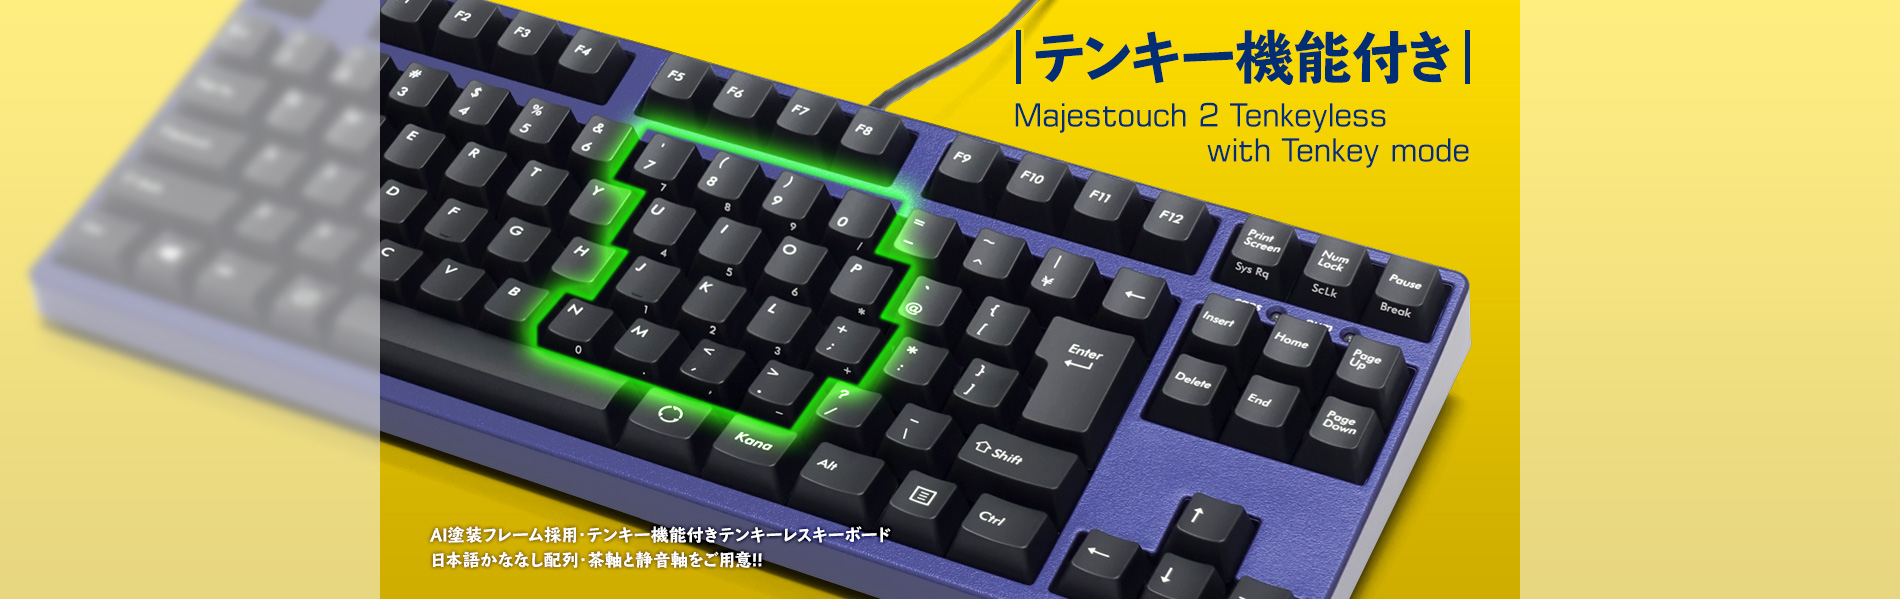 Majestouch 2 Tenkeyless with Tenkey mode